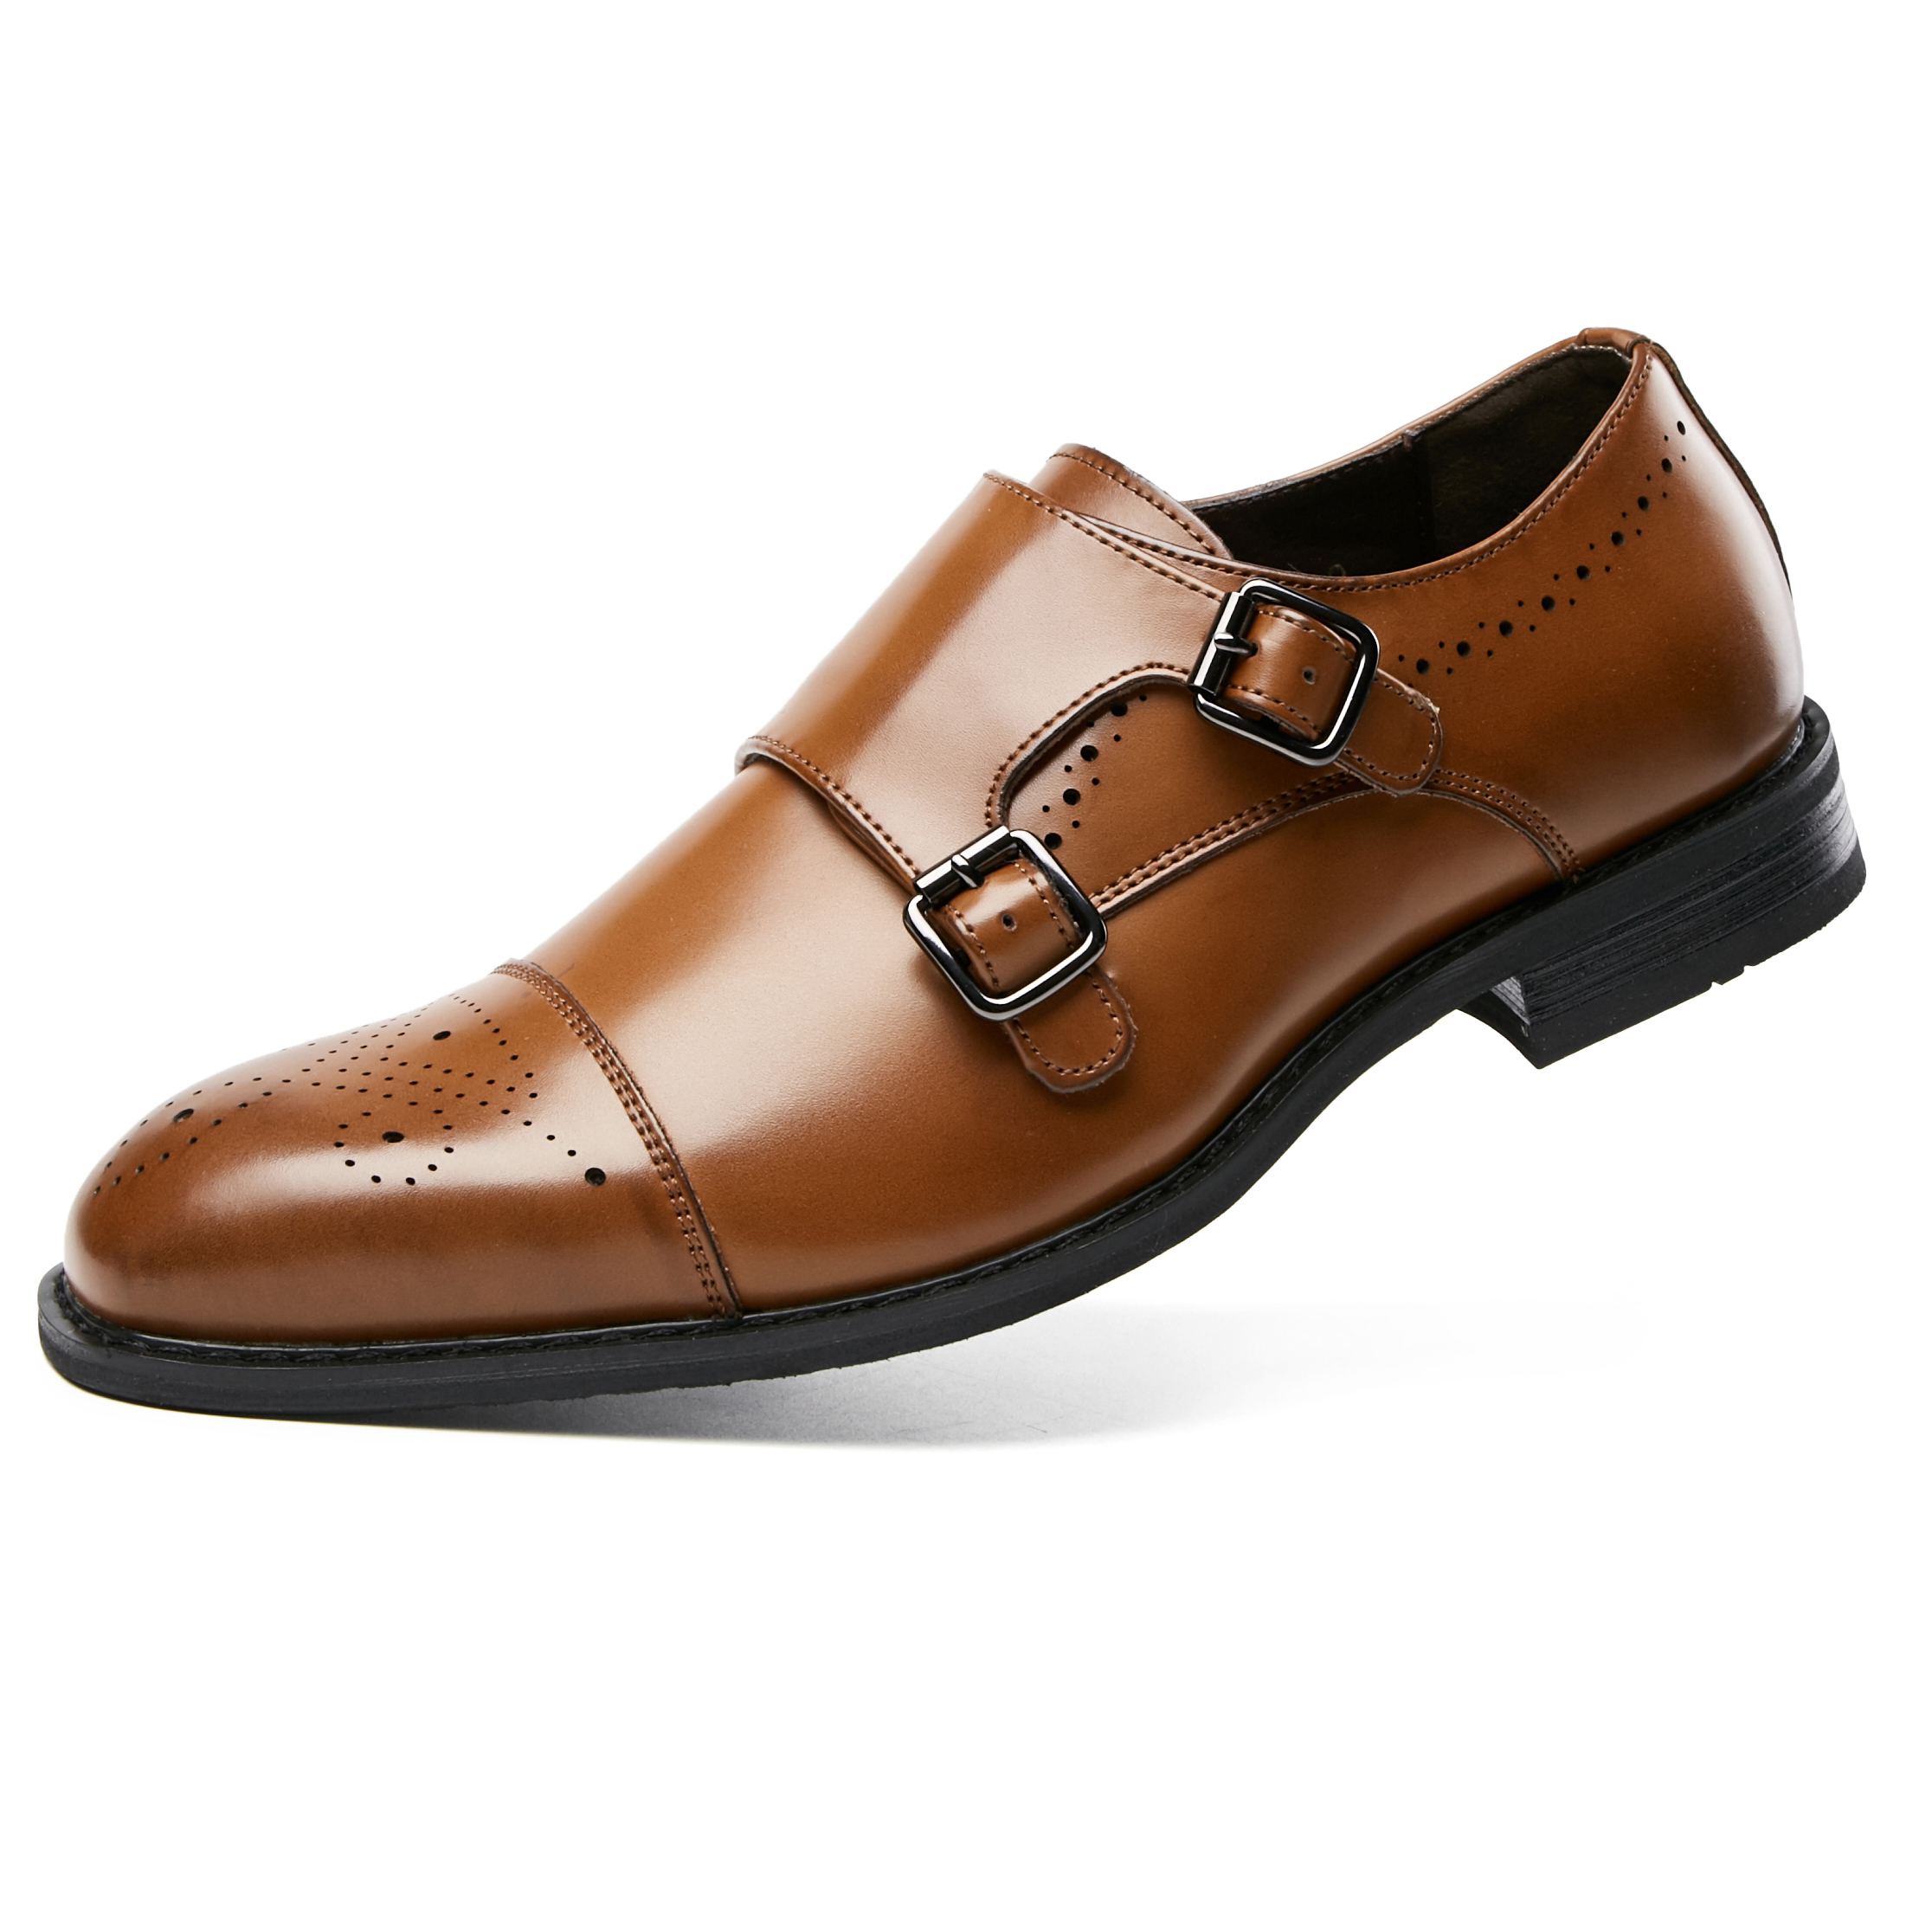 EVERTOP Hot sale office genuine leather <strong>shoes</strong> slip-on design cow leather dress <strong>shoes</strong> <strong>men</strong> business <strong>shoes</strong>